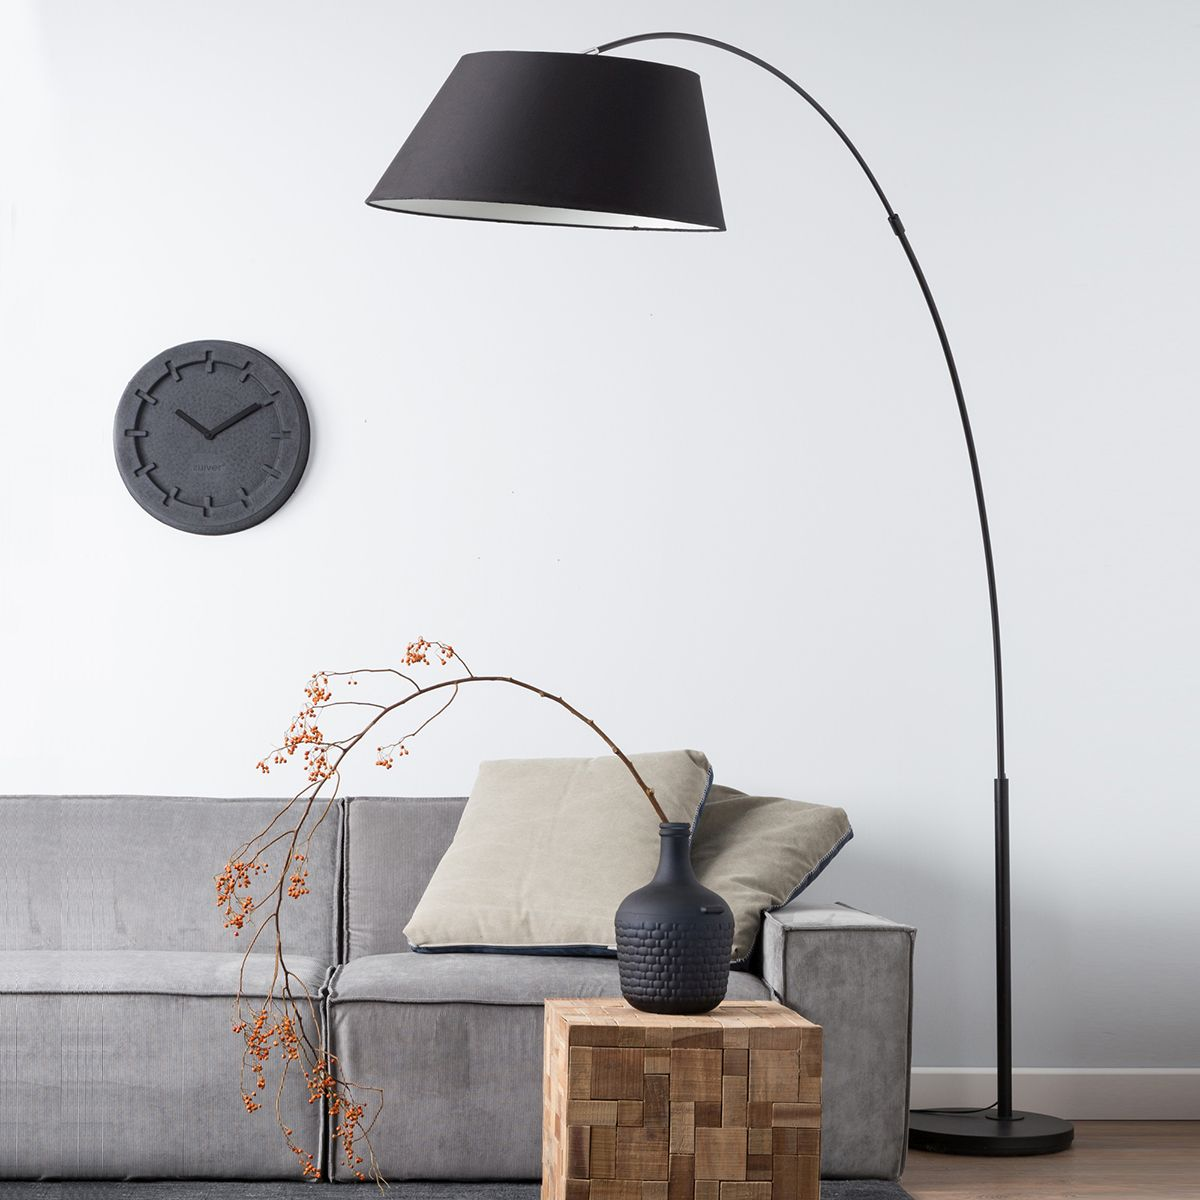 Why you should own an Arc Floor Lamp?